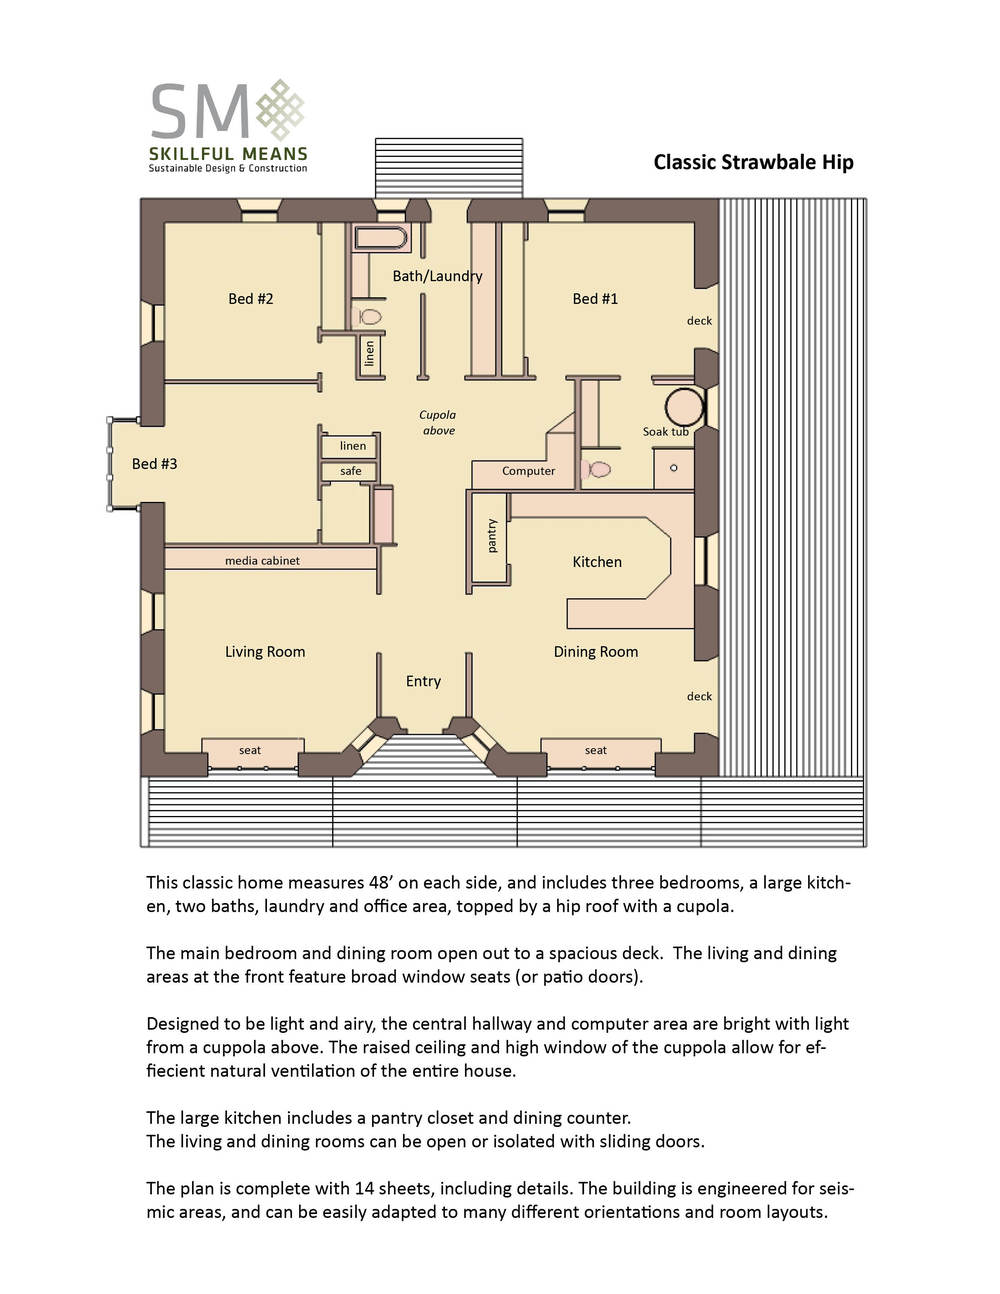 house-plans-classic-strawbale-hip